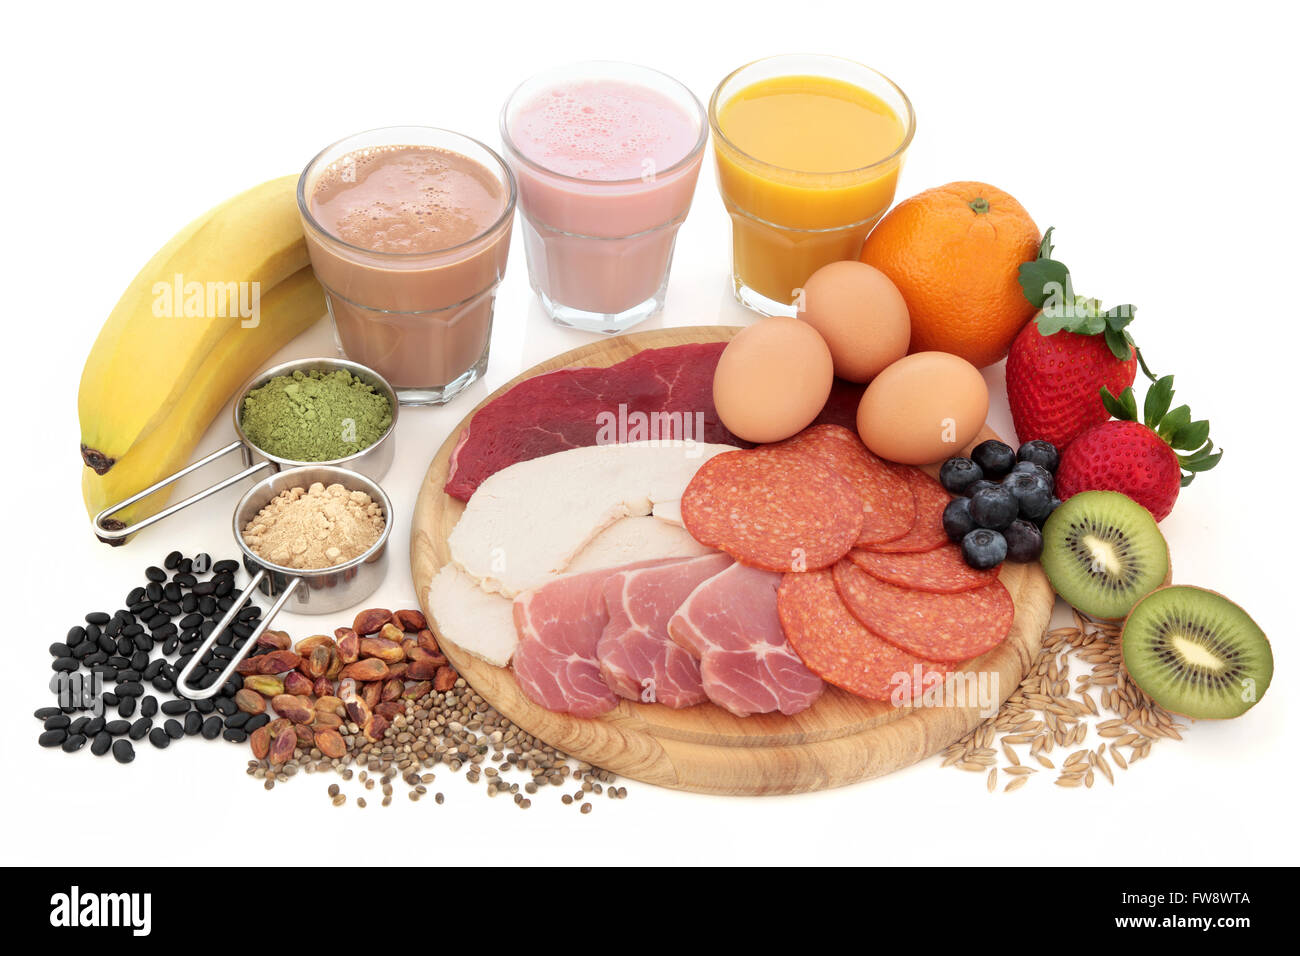 Protein food is good for health 85